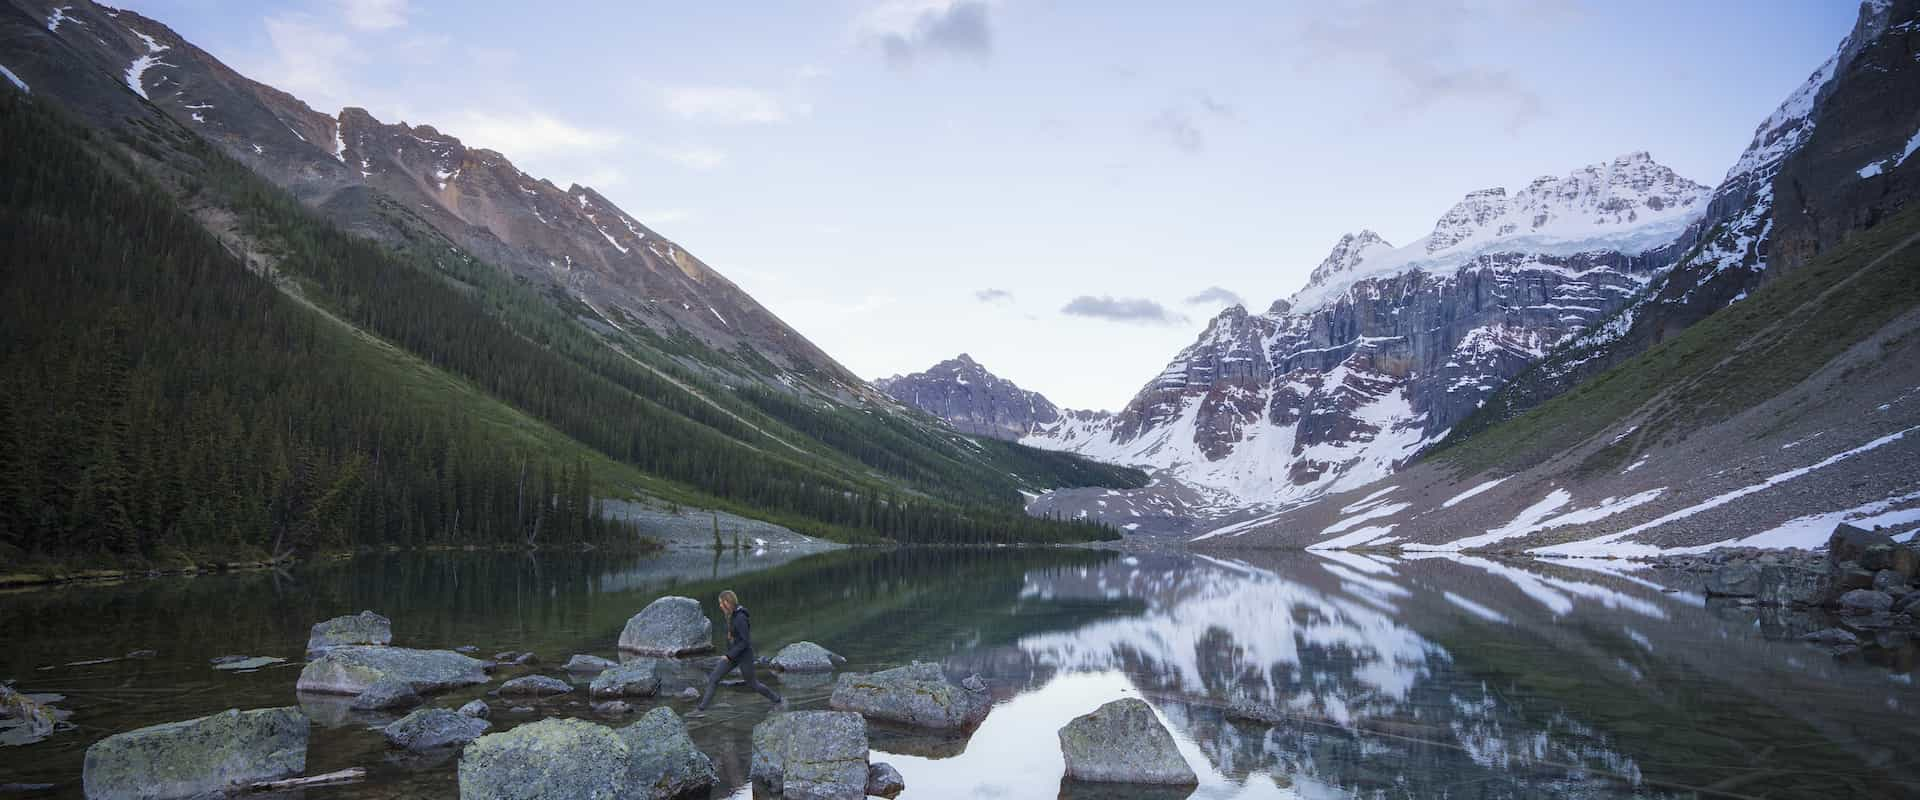 Hike to Consolation Lakes and see Moraine Lake on a guided hiking tour with Discover Banff Tours